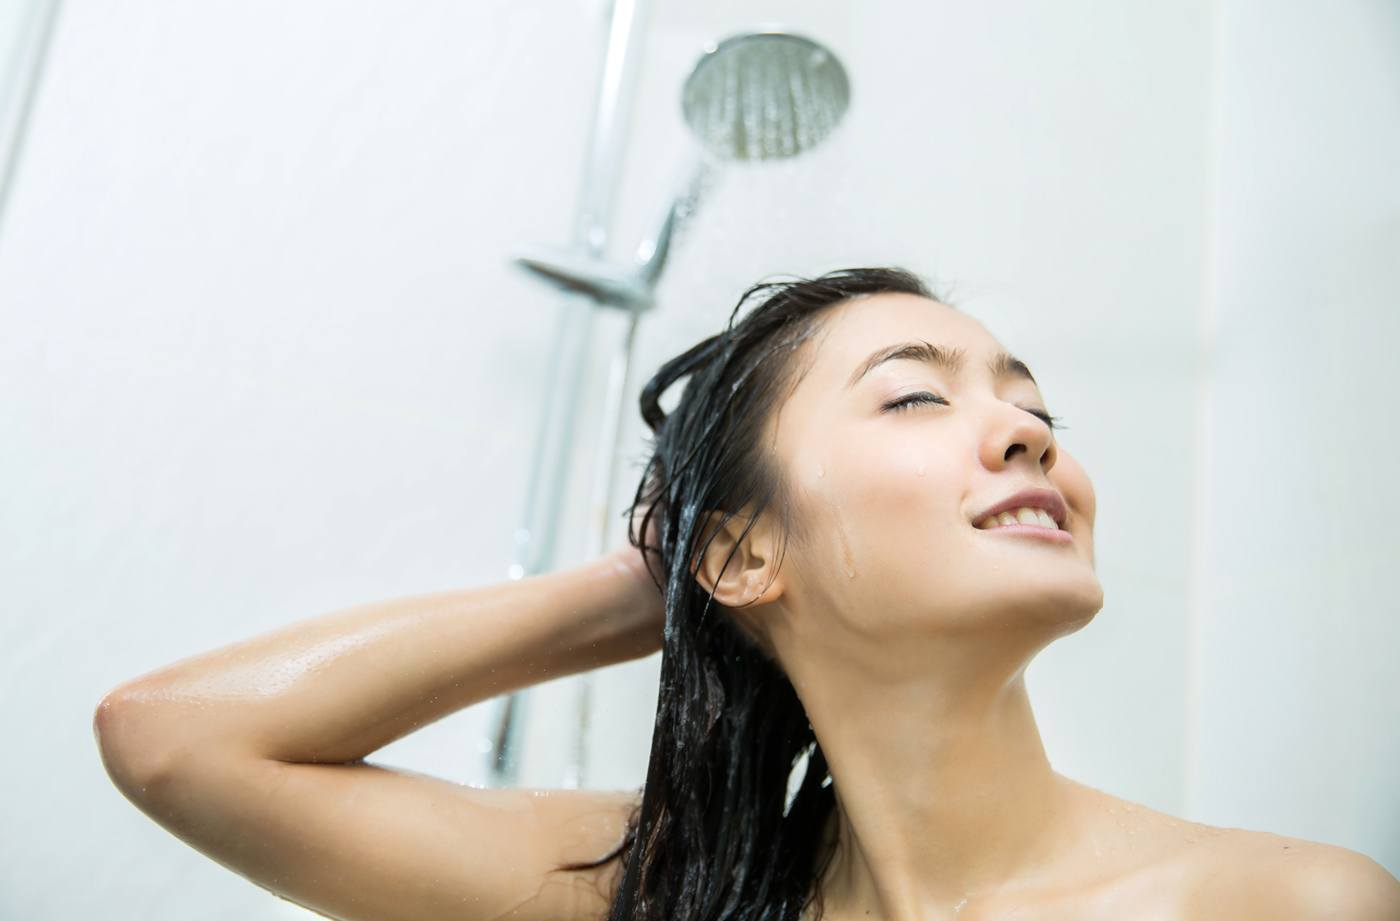 Thumbnail for The 1-minute shower hack to stop next-day workout soreness in its tracks